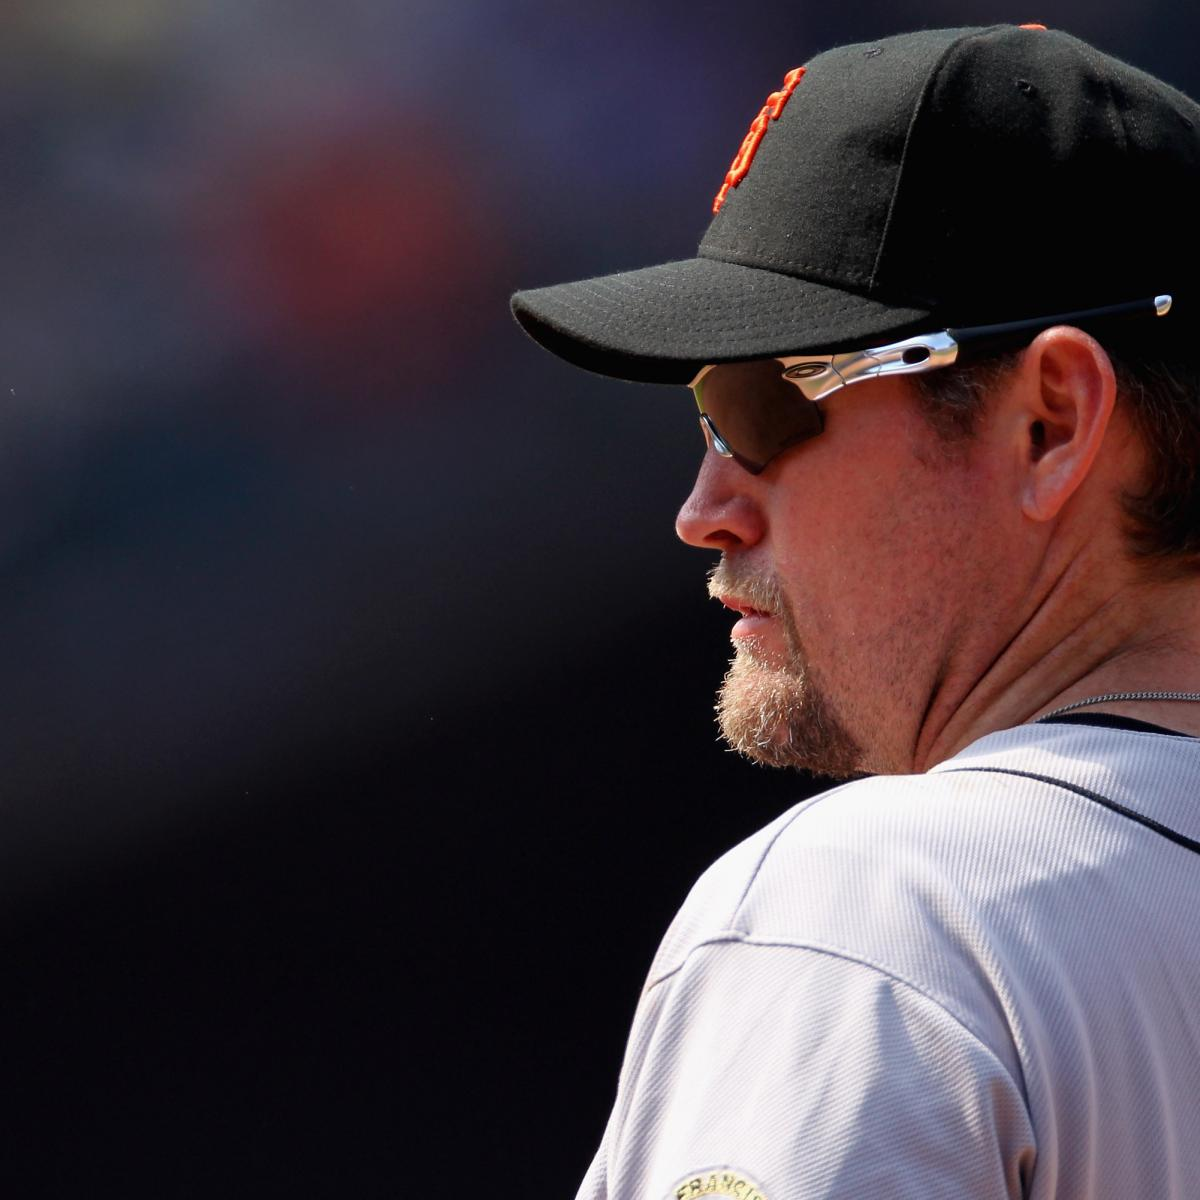 Giants to Exclude Aubrey Huff from 2010 WS Reunion Due to 'Unacceptable' Tweets